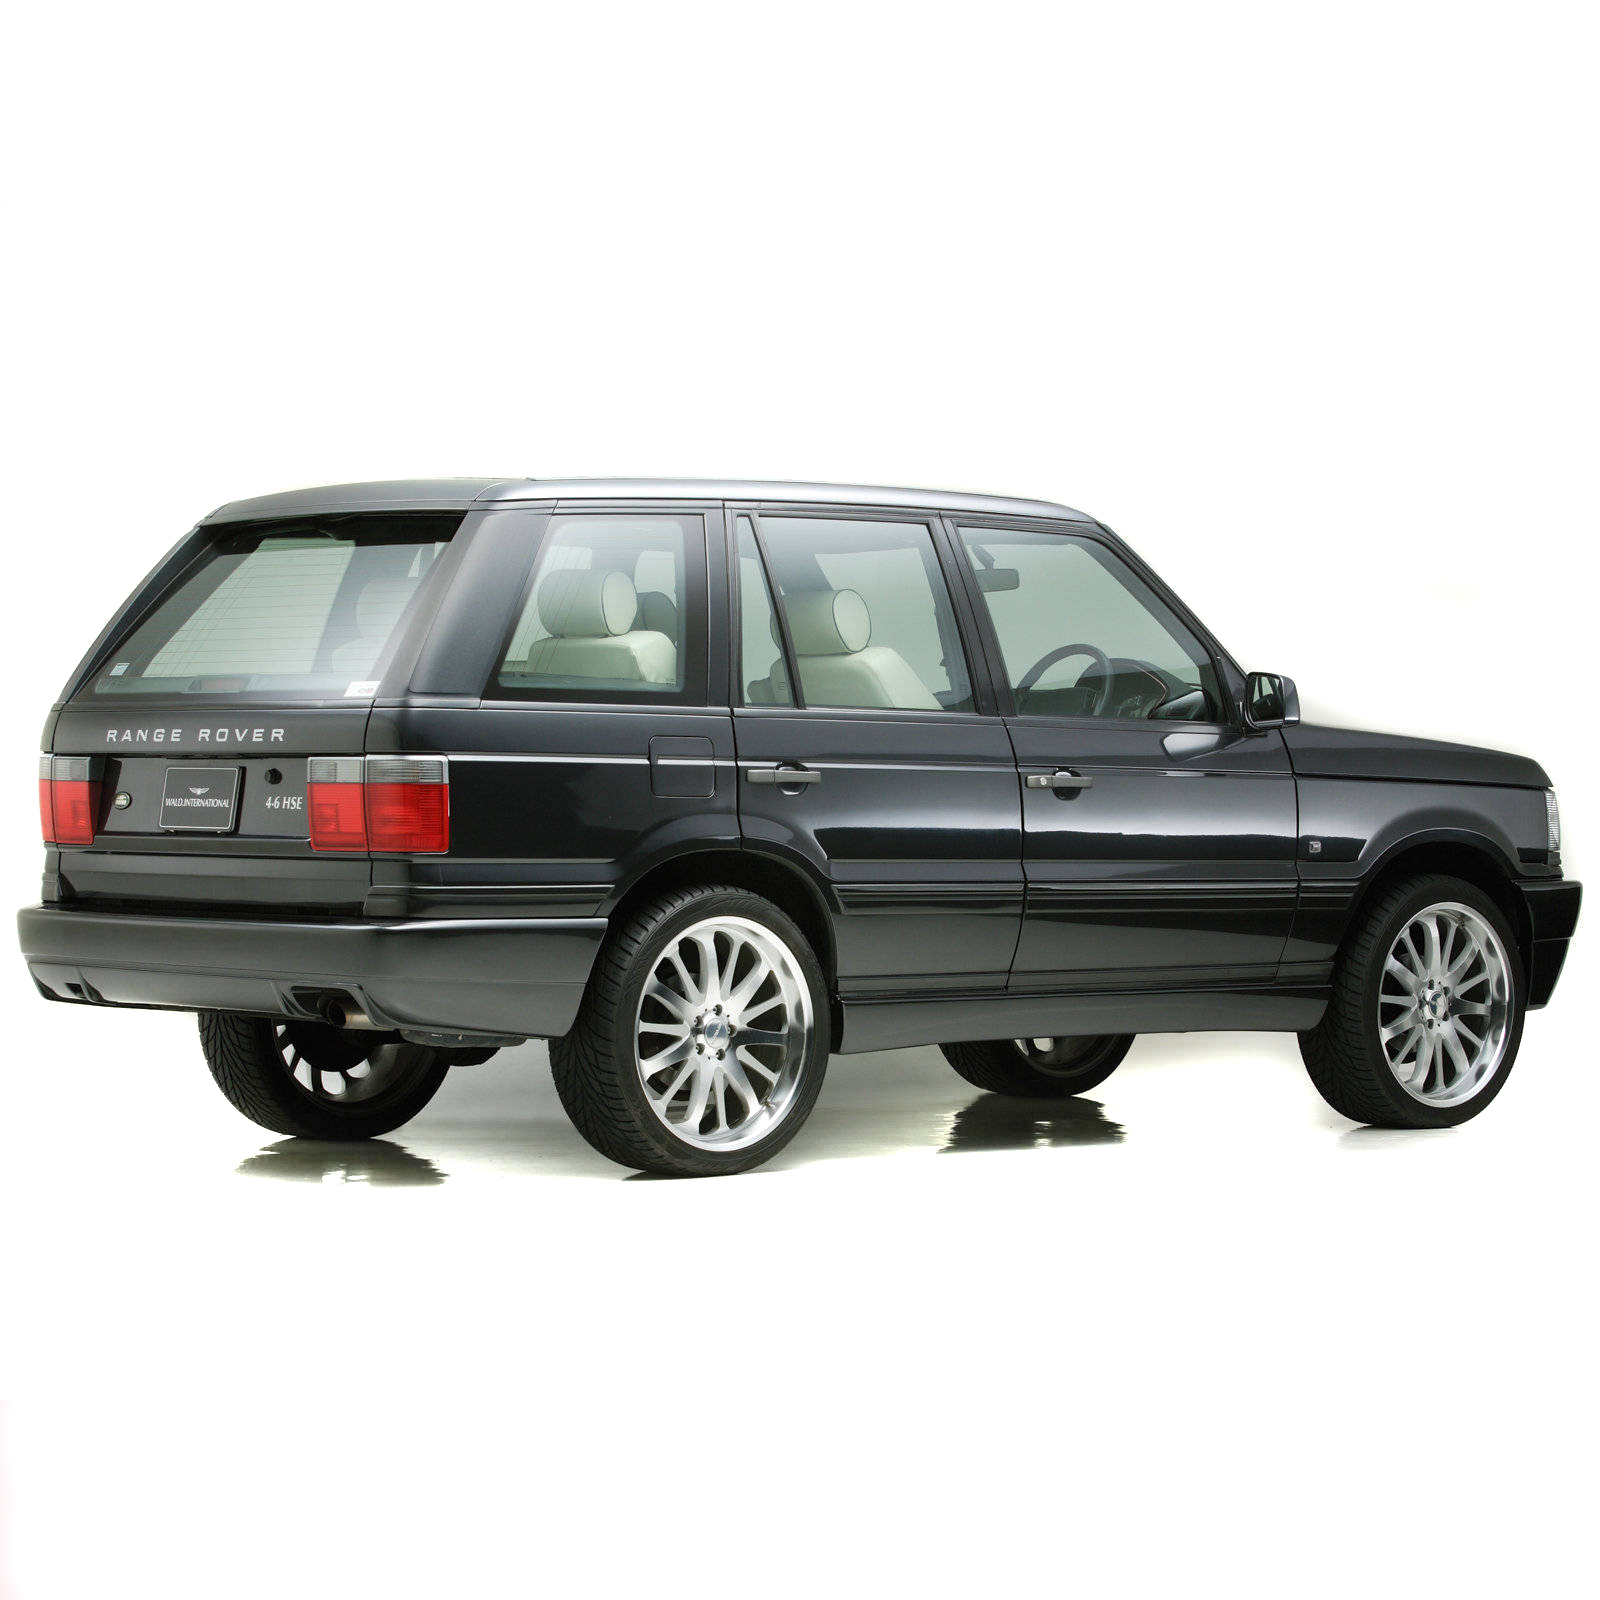 Land Rover Range Rover (LHD) 2002 - 2005